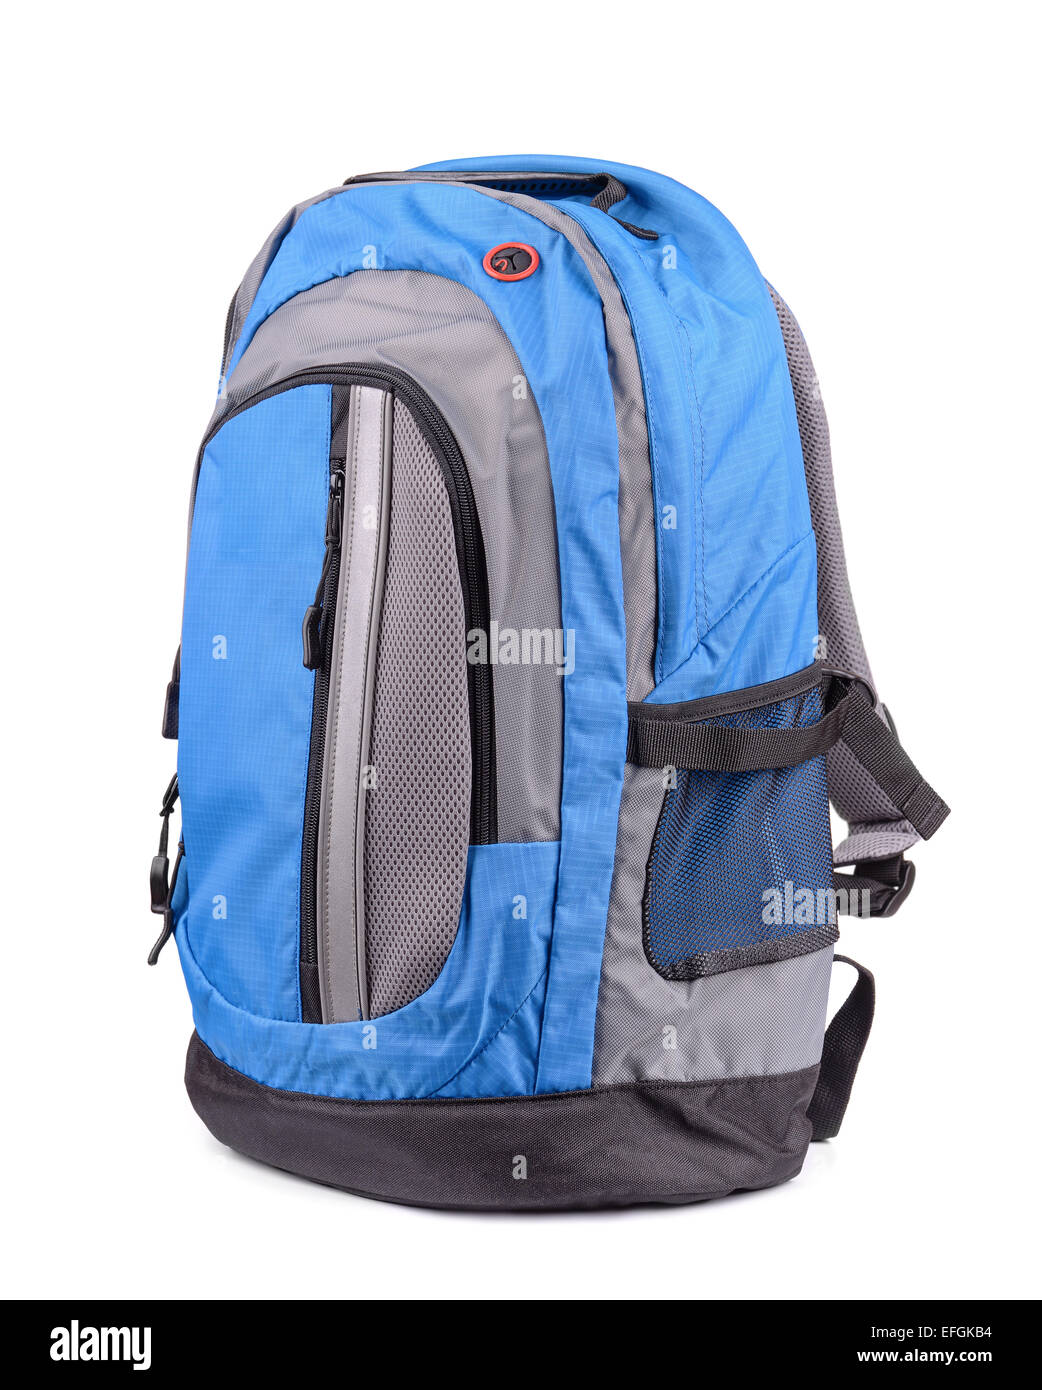 Blue backpack isolated on white - Stock Image